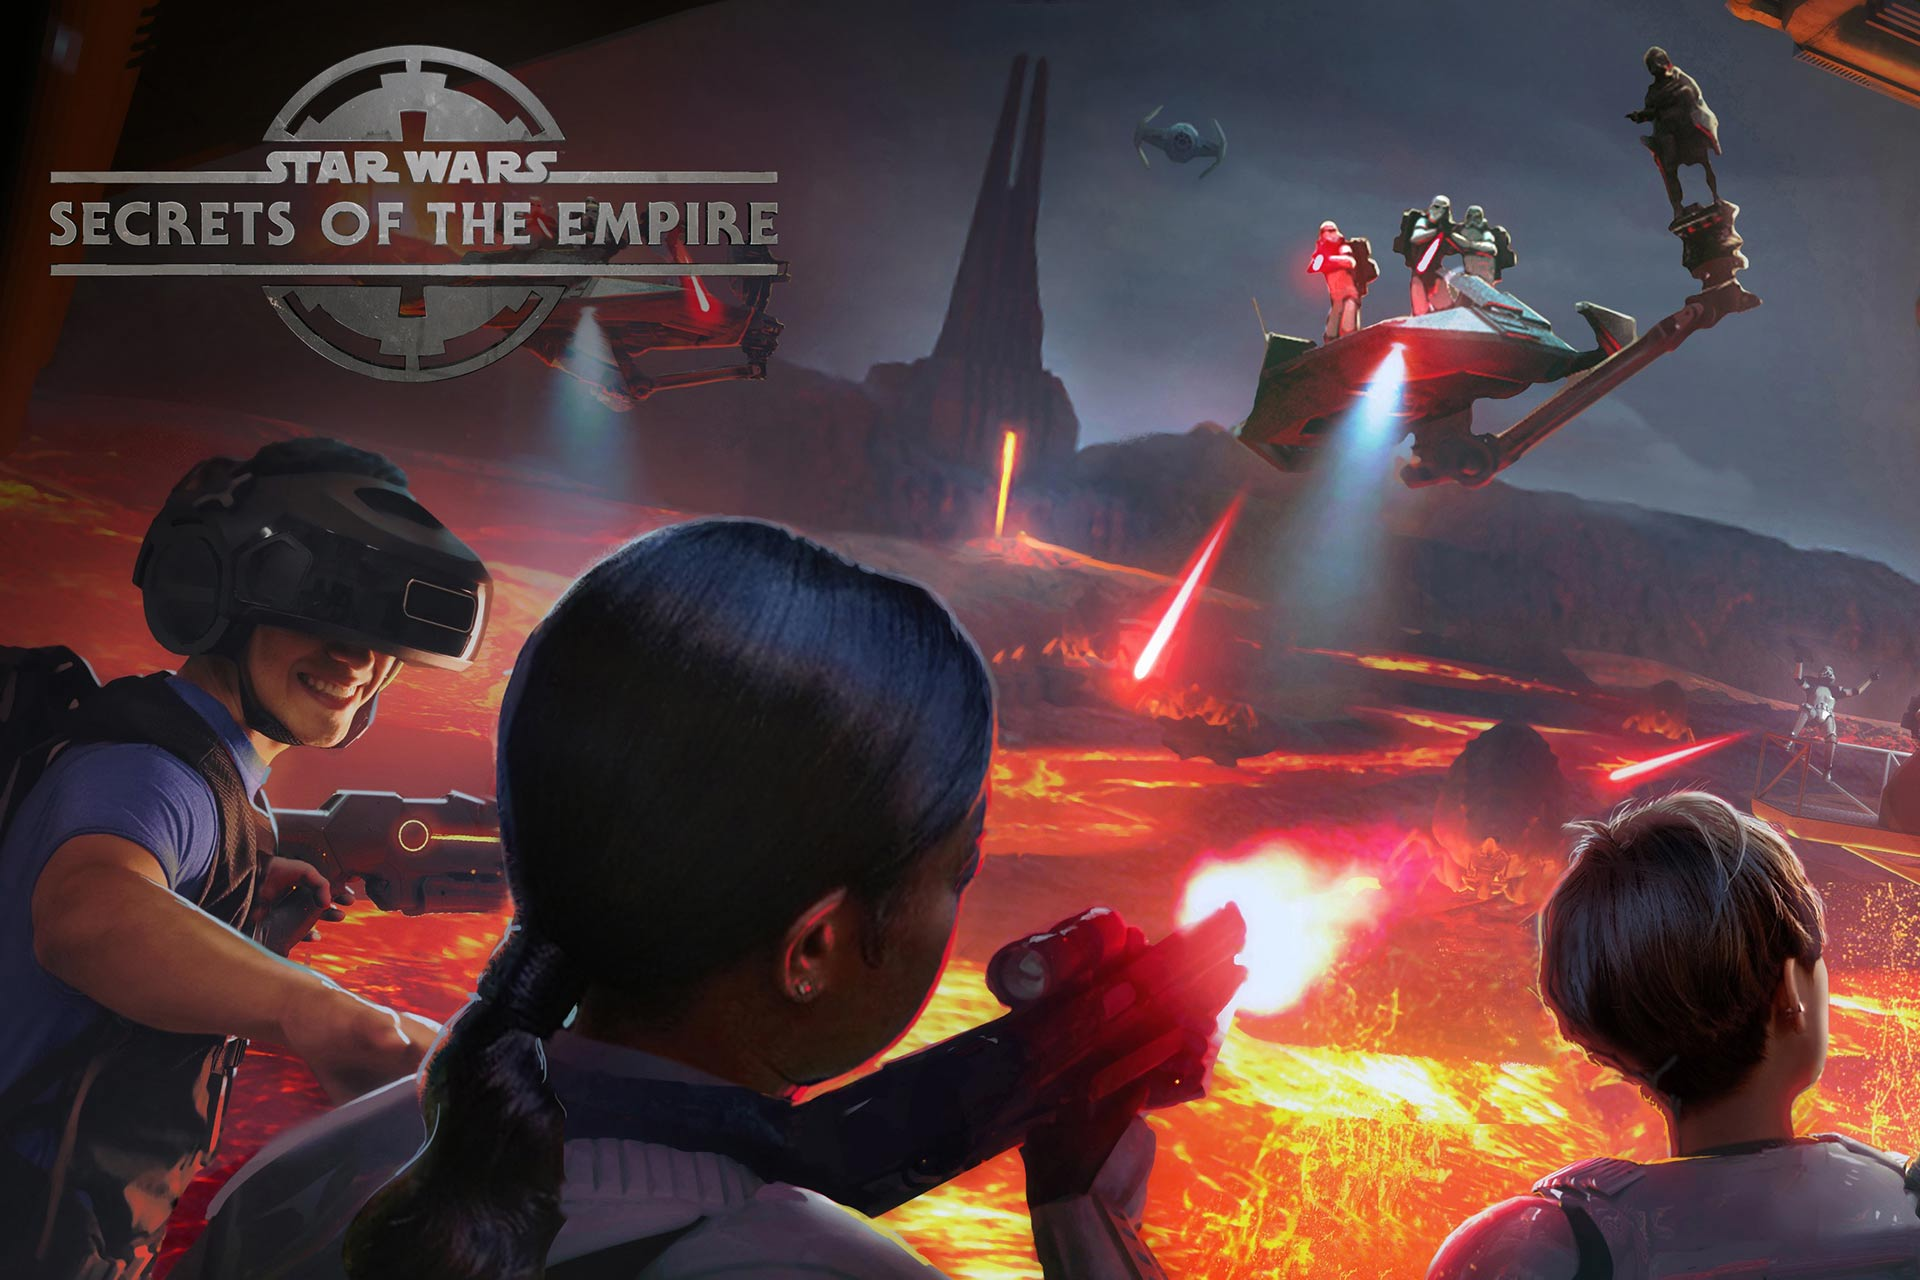 Star Wars: Secrets of the Empire Virtual Reality Experience at Disney Springs.